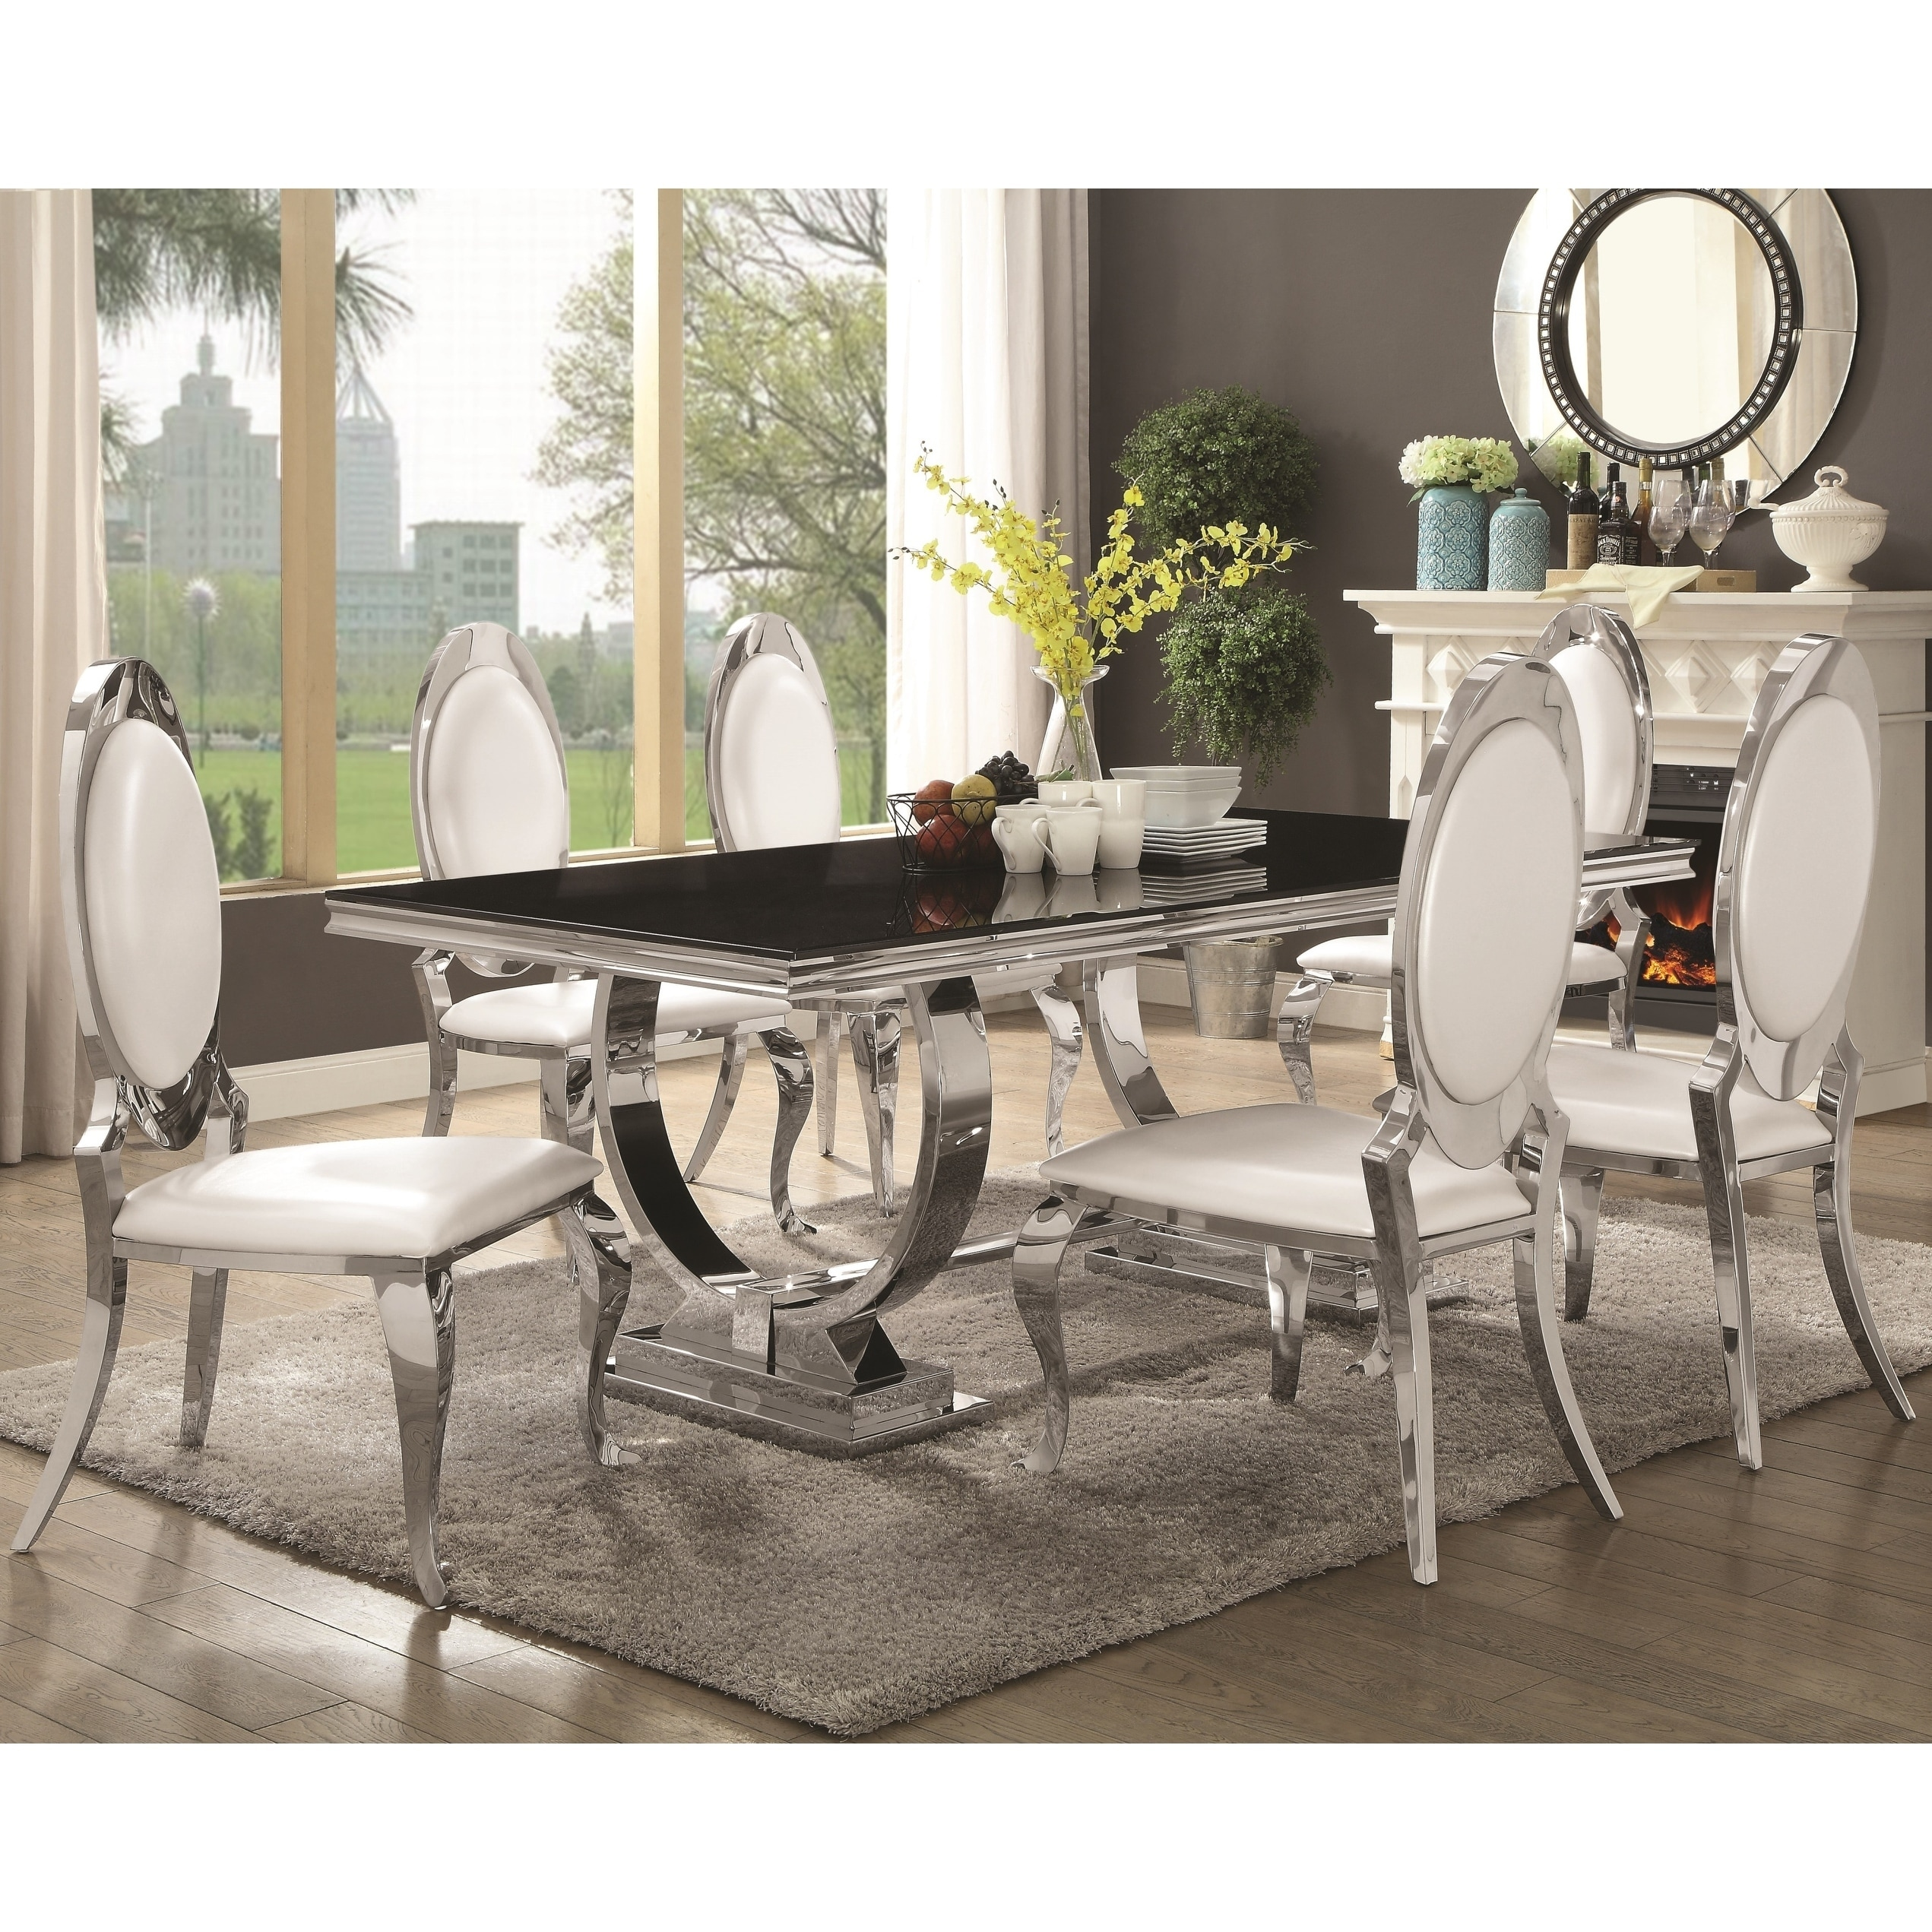 Luxurious Modern Design Stainless Steel Dining Set With Black Glass Table Top Overstock 23491227